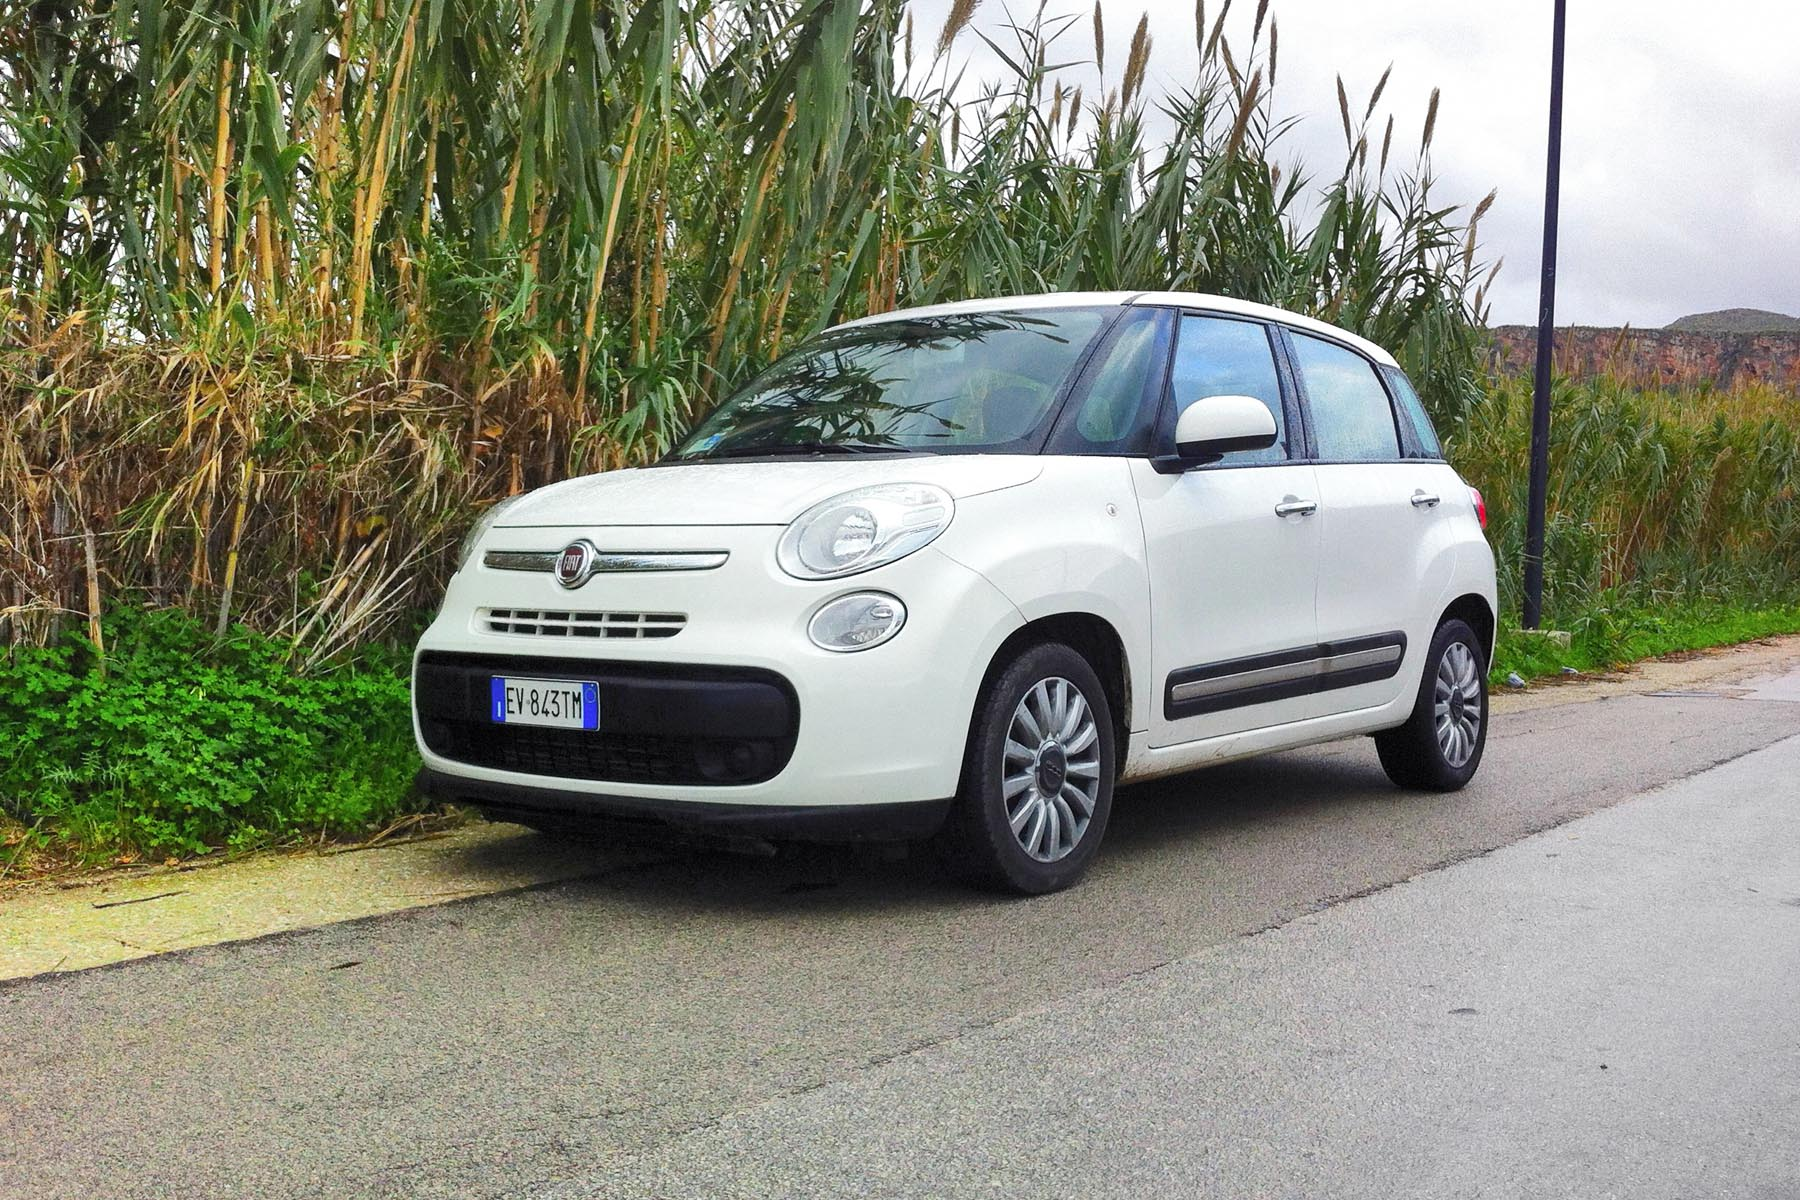 Road Trip Sicily In A Fiat 500l Page 4 Of 5 Autosca Page 4